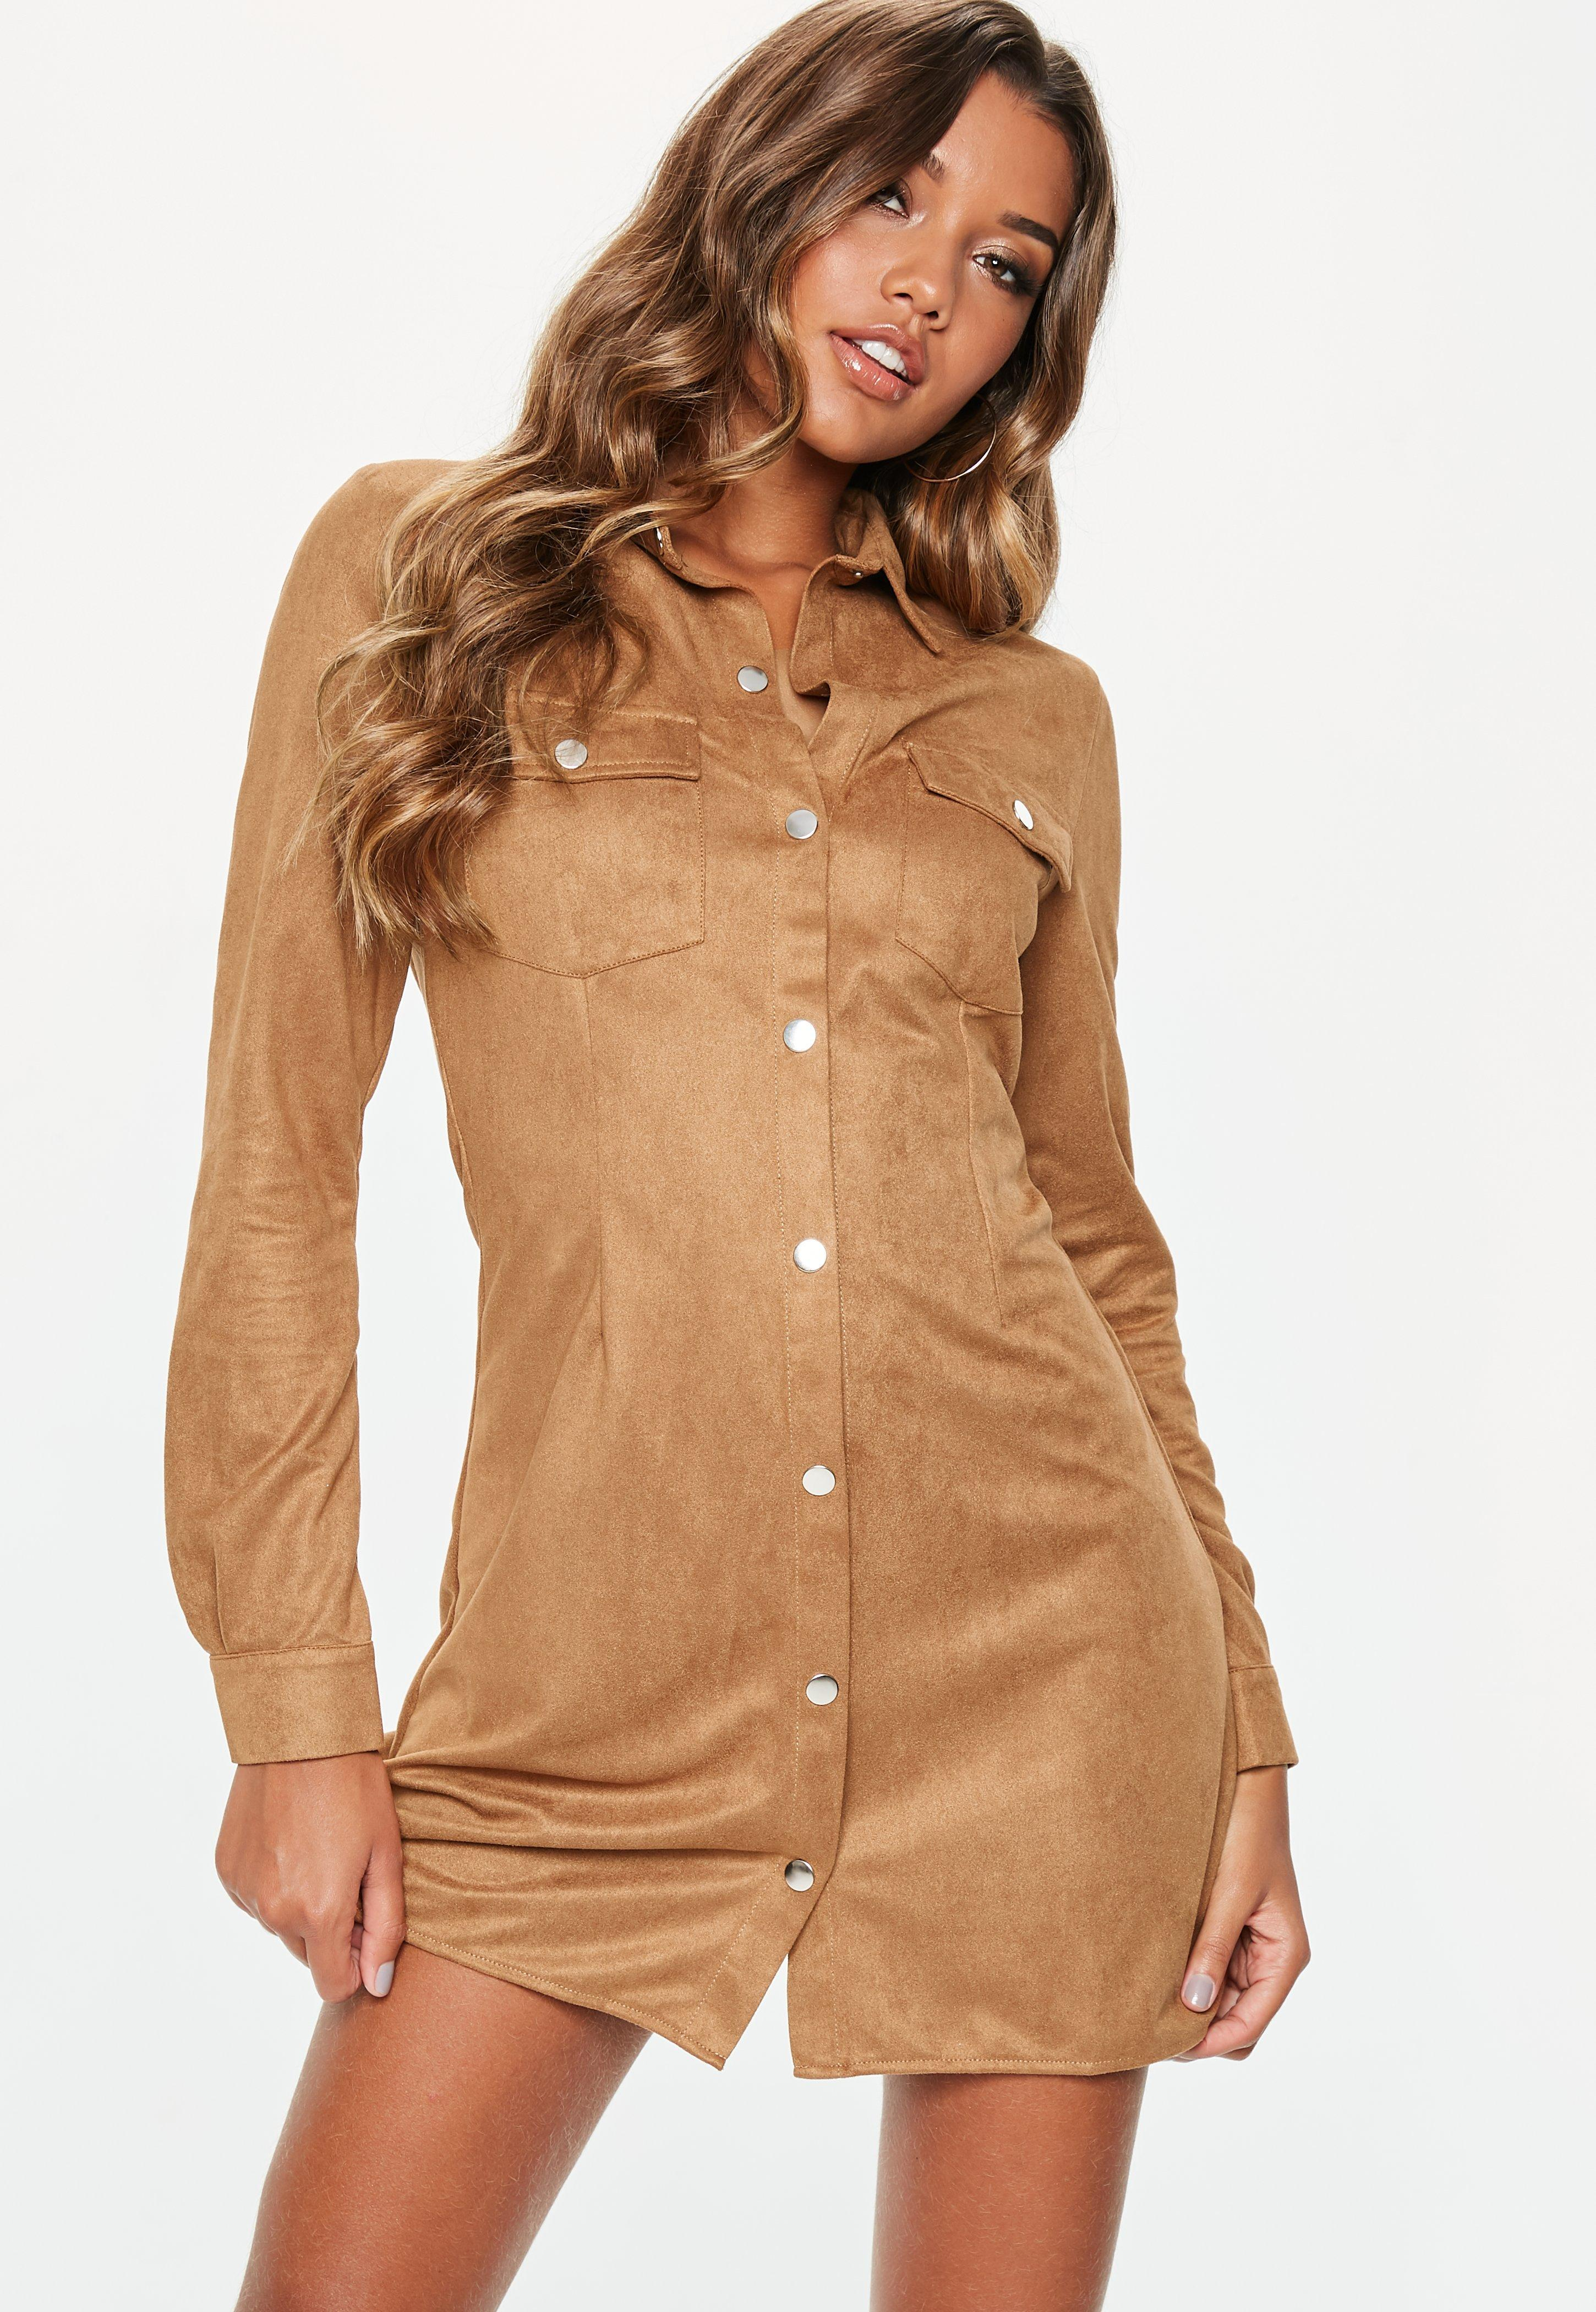 dbf61097b46 Lyst - Missguided Tall Tan Faux Suede Popper Front Skater Dress in Brown